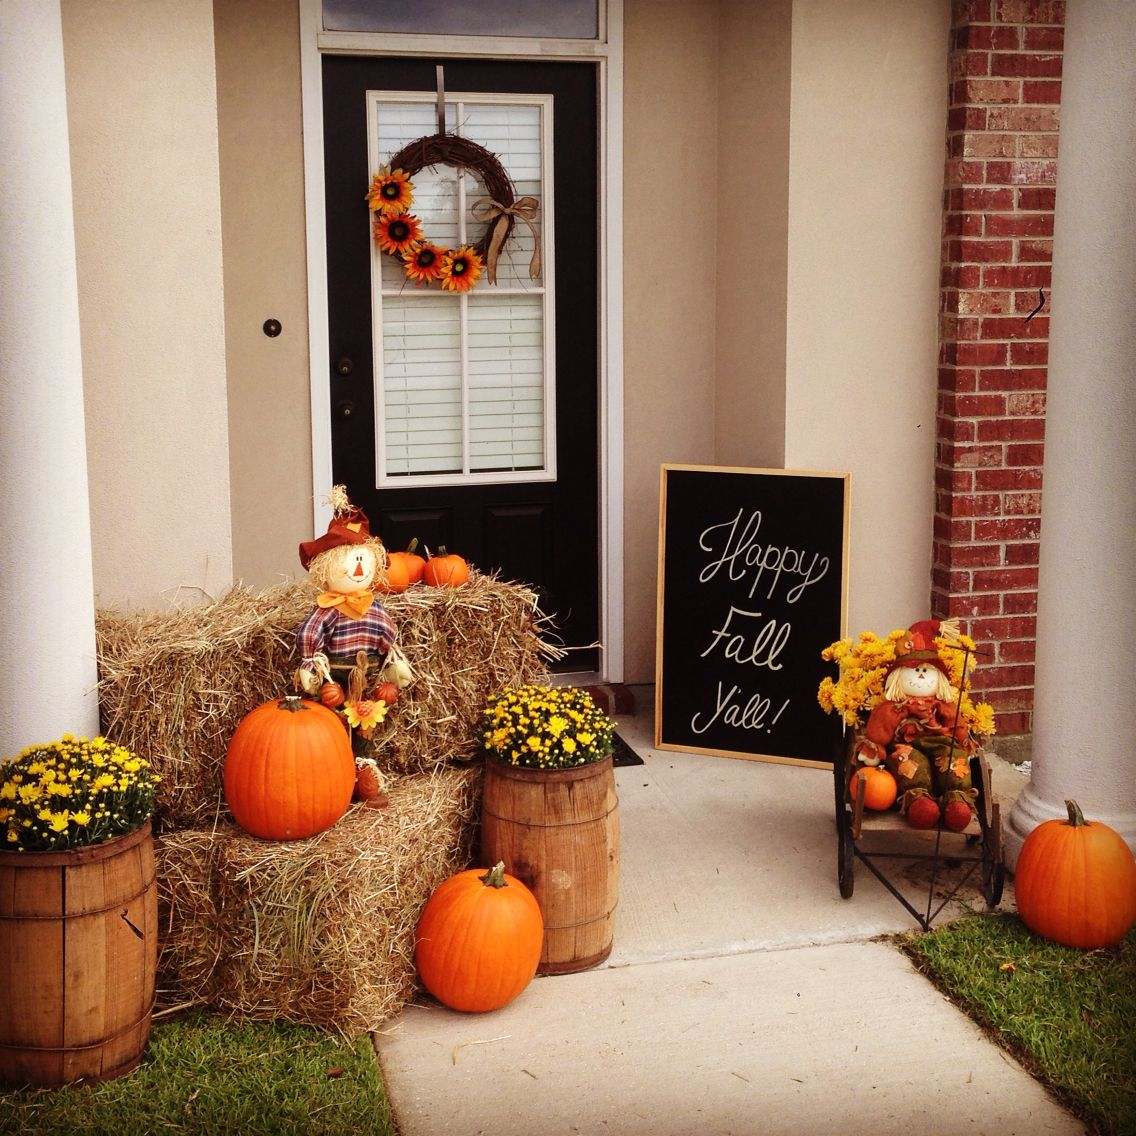 Hy Fall Y All Front Porch Decor Hay Bales Pumpkins Mums Scarecrows Sunflower Wreath